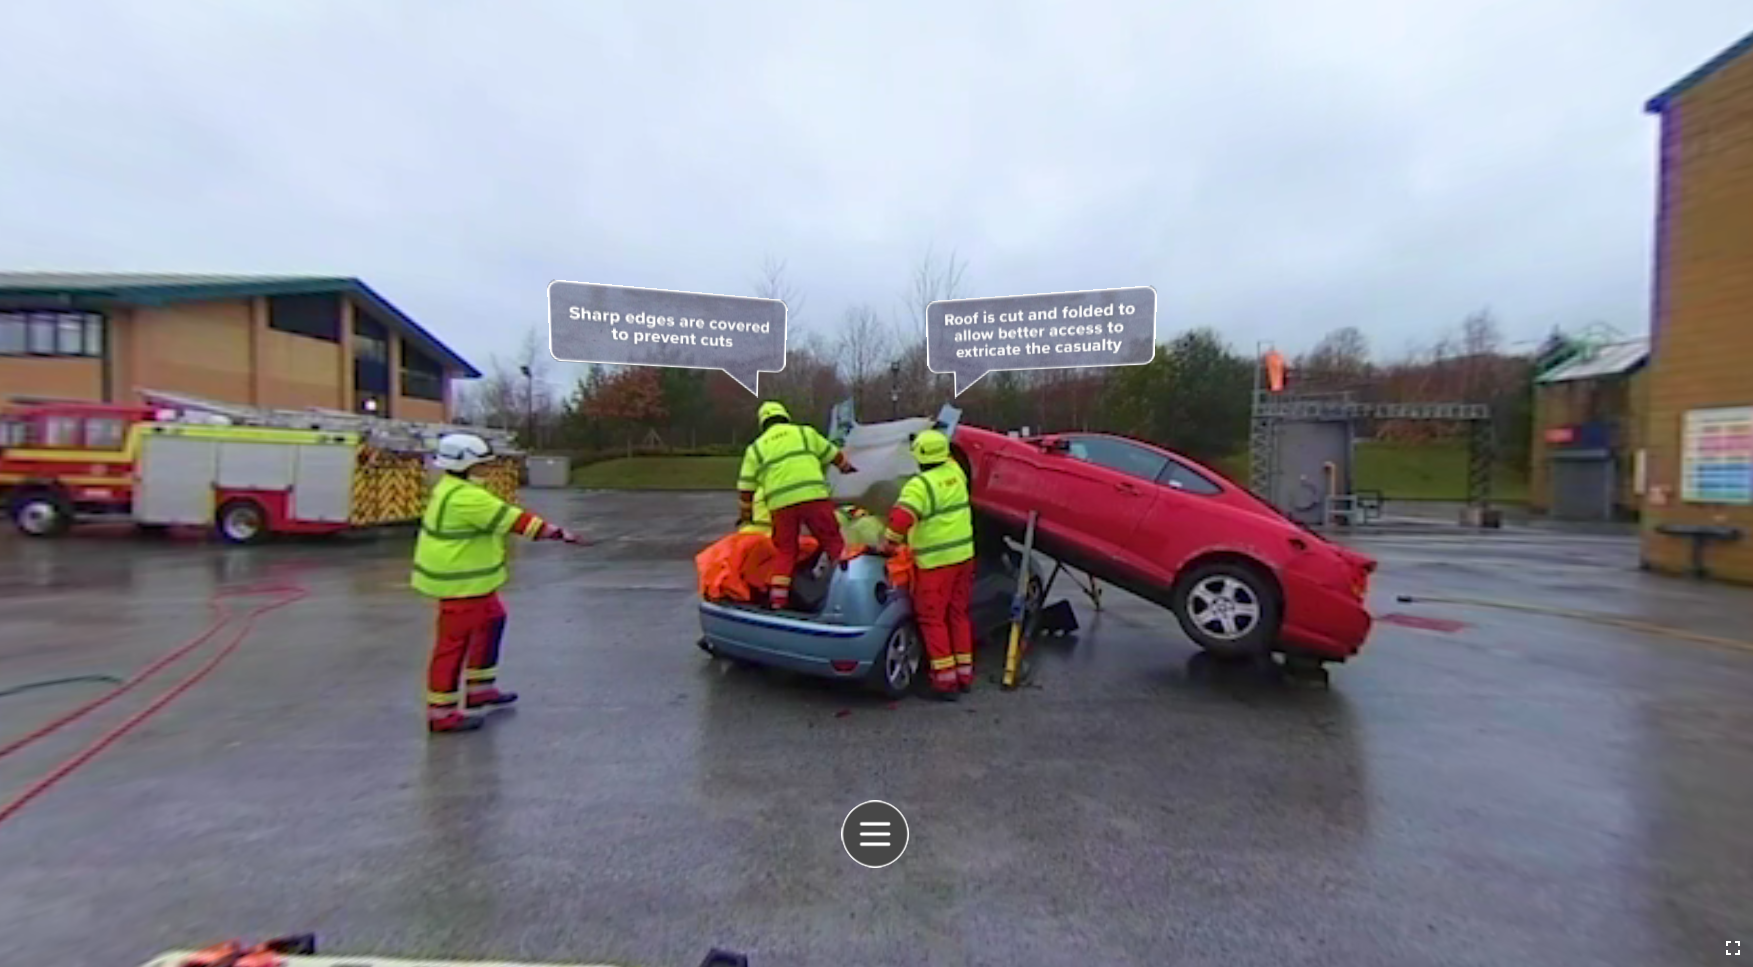 Image from the immersive training, where firefighters respond to the scene of a collision, where they extract and rescue a victim.